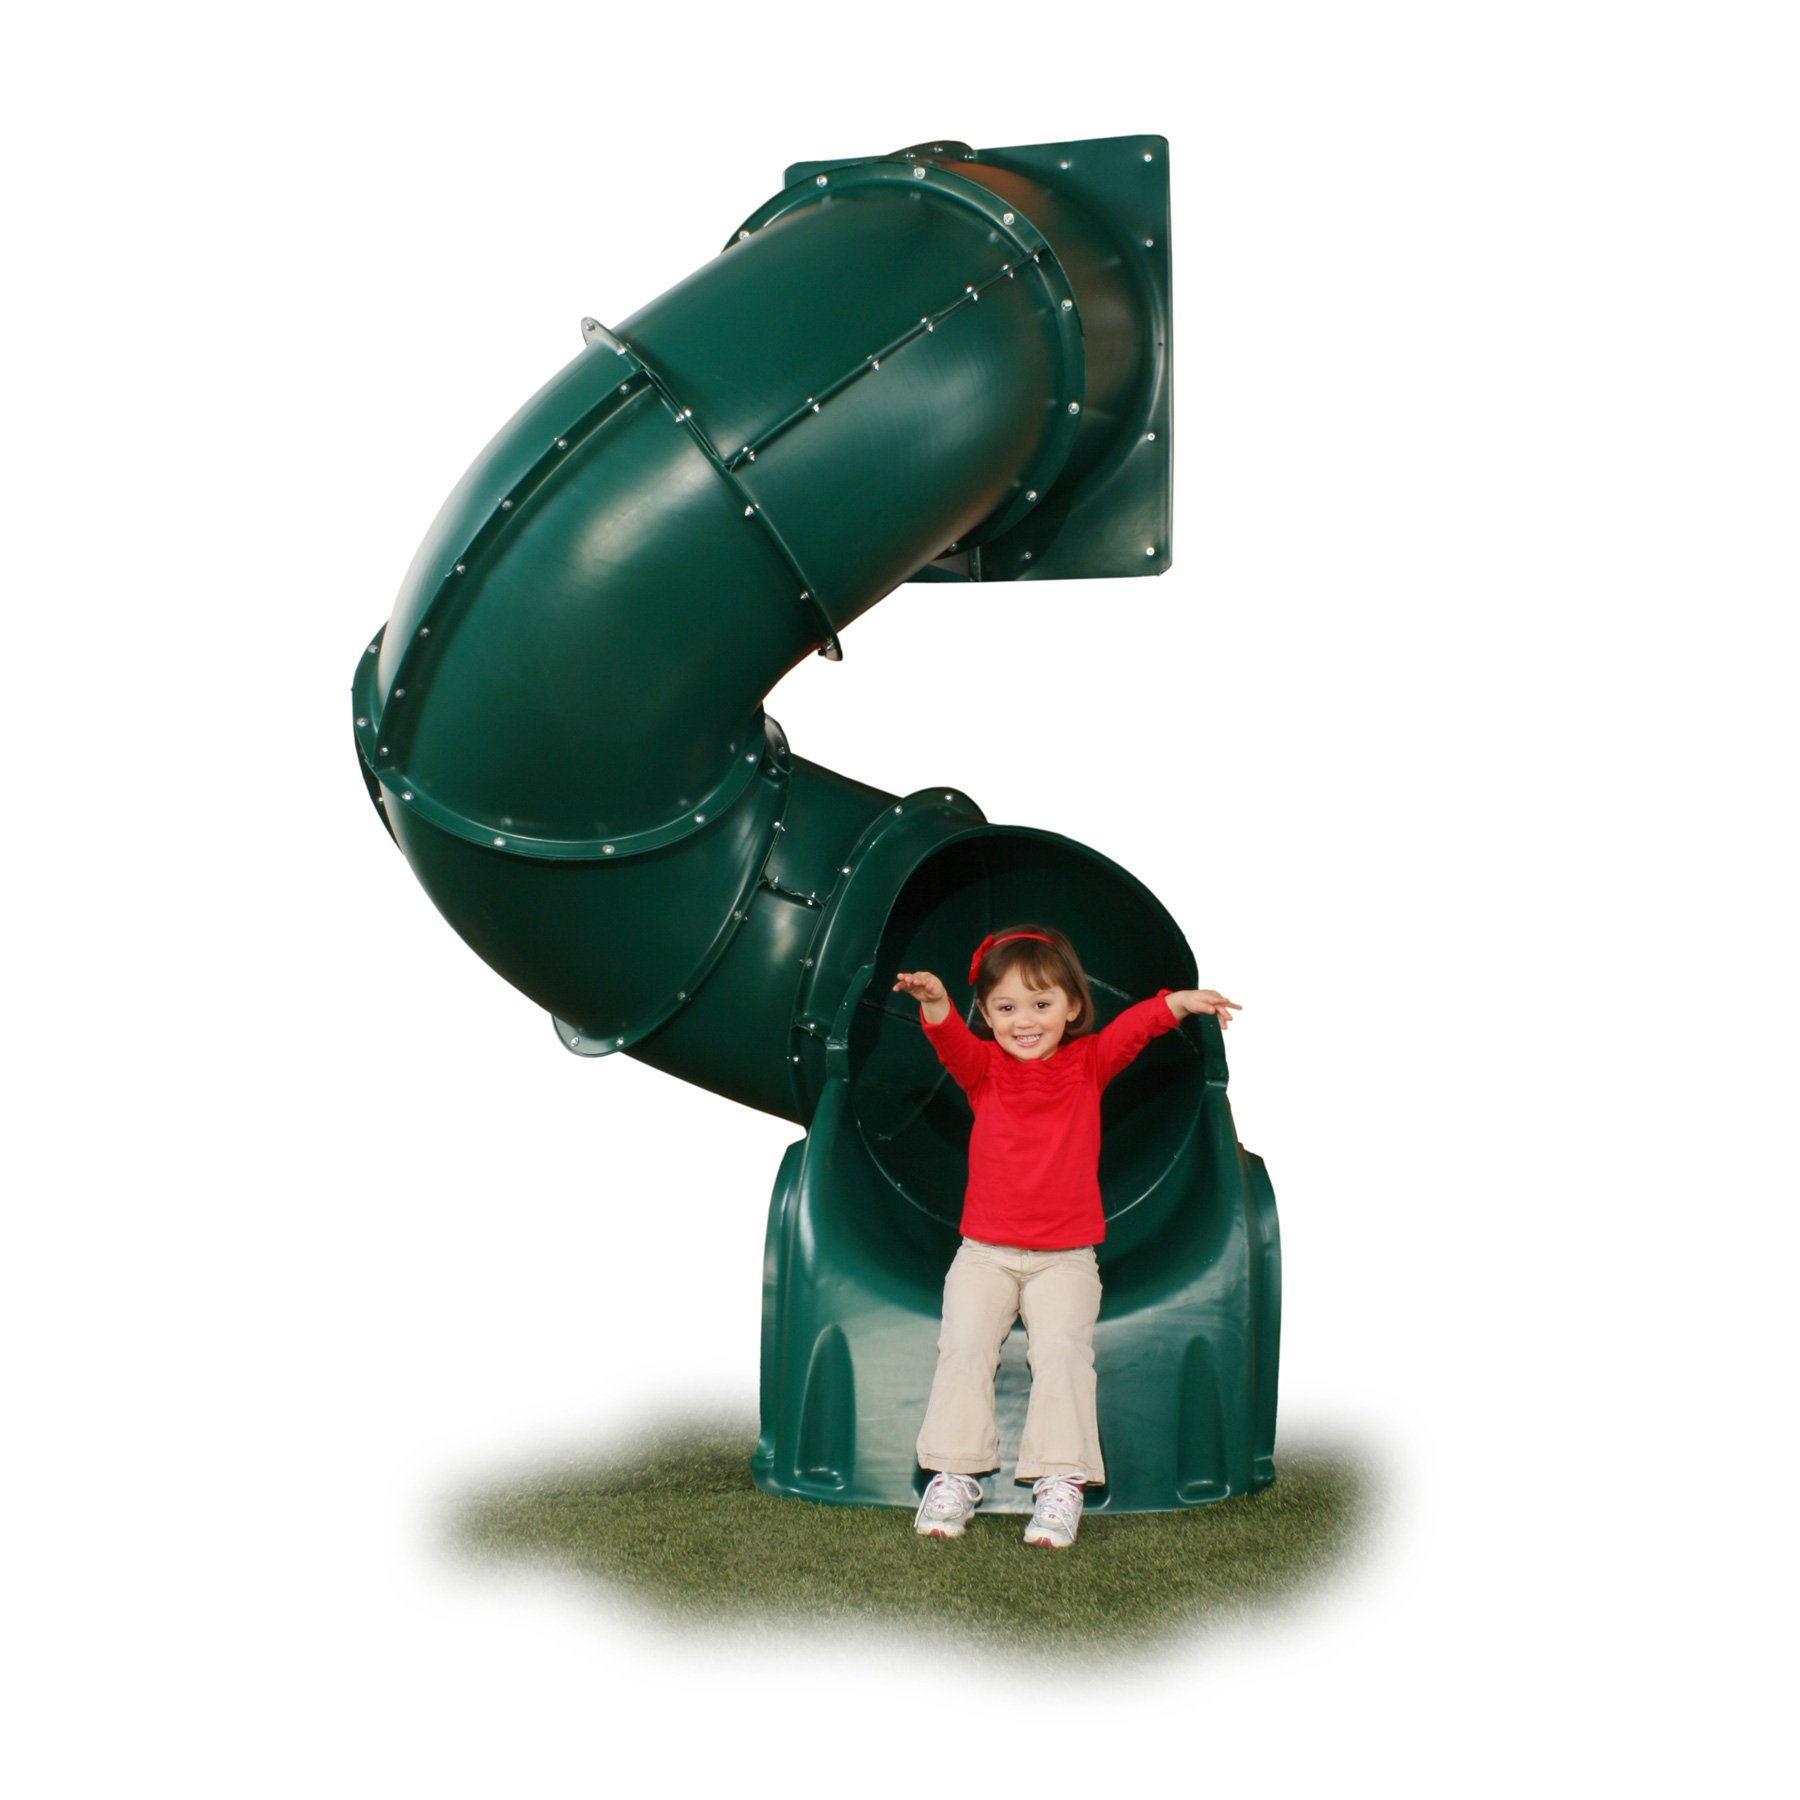 5 Ft Turbo Tube Slide Green by Swing-N-Slide (Image #1)